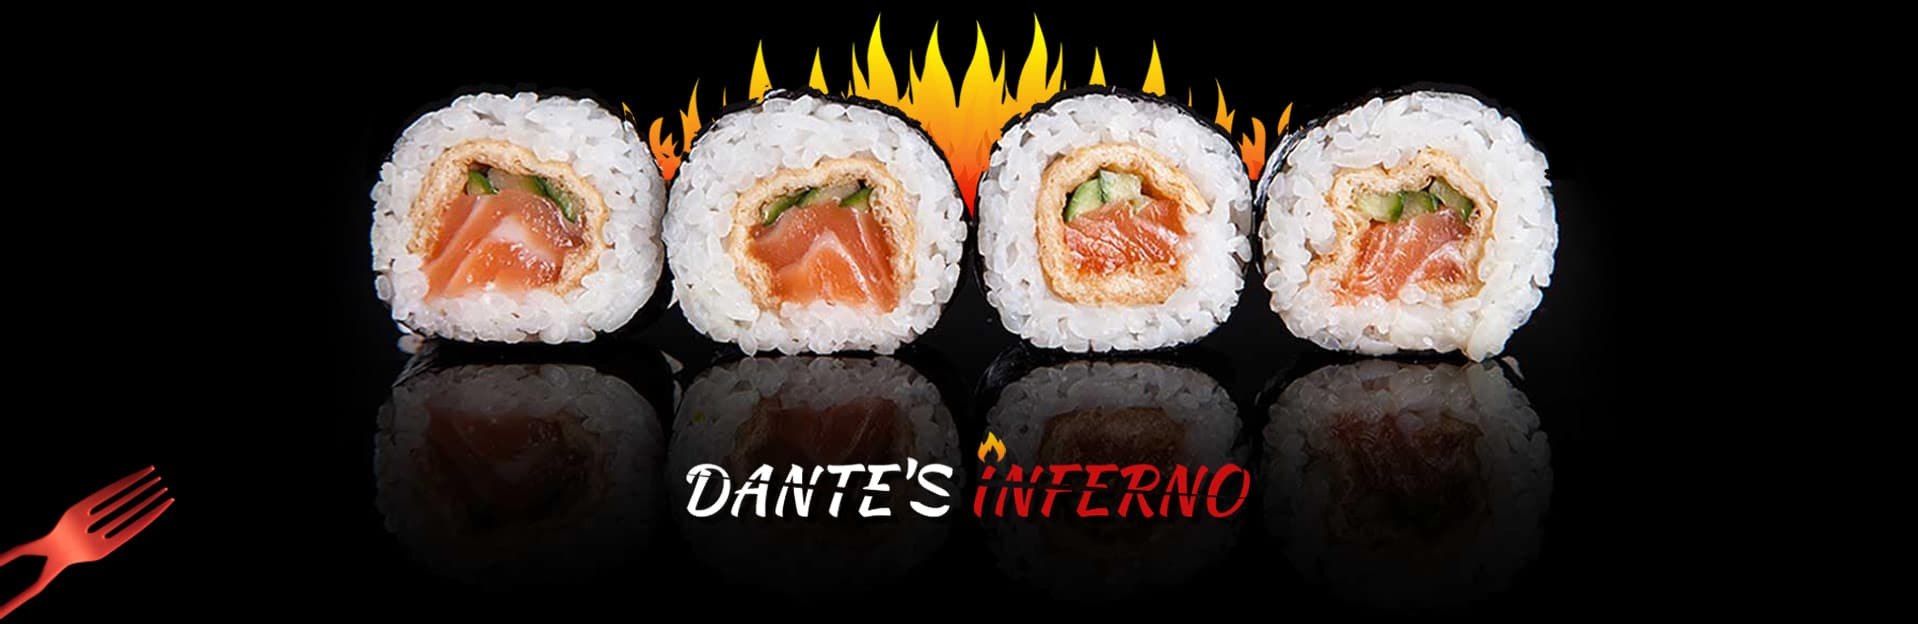 SushiFork - Dante's Inferno Sushi in Tulsa and Dallas